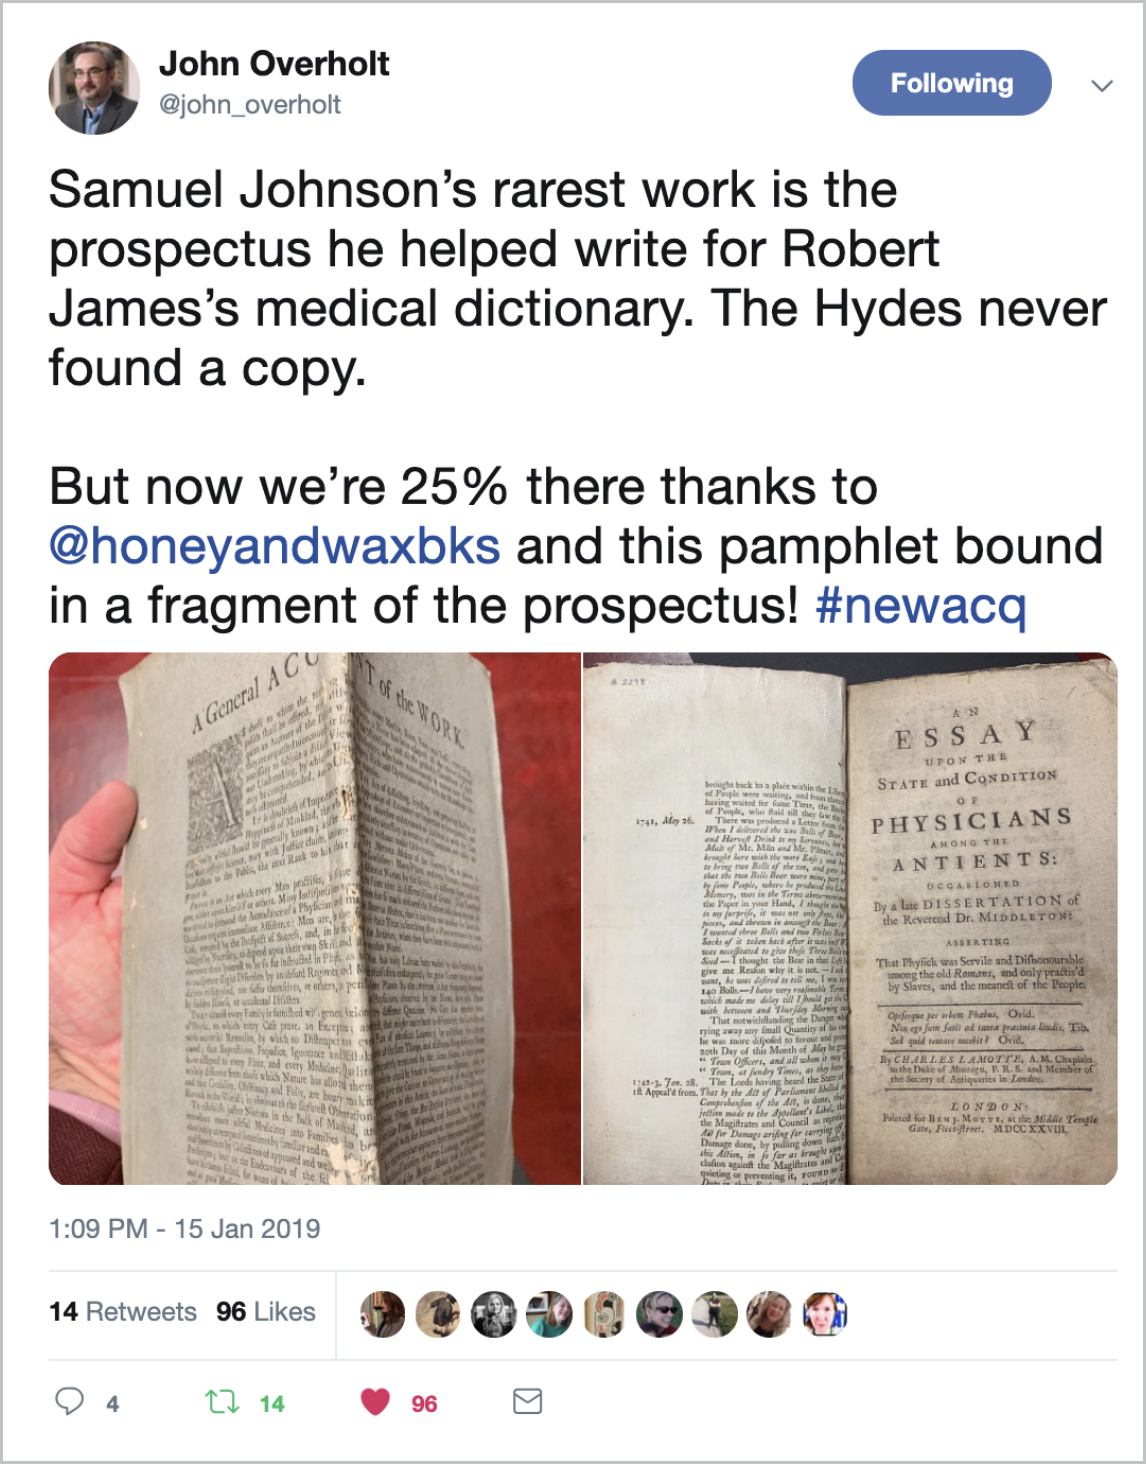 A tweet from John Overholt  ,   Curator of the Donald and Mary Hyde Collection of Dr. Samuel Johnson and Early Modern Books and Manuscripts, describing the fragment of Samuel Johnson's prospectus for a medical dictionary discovered by Honey & Wax.